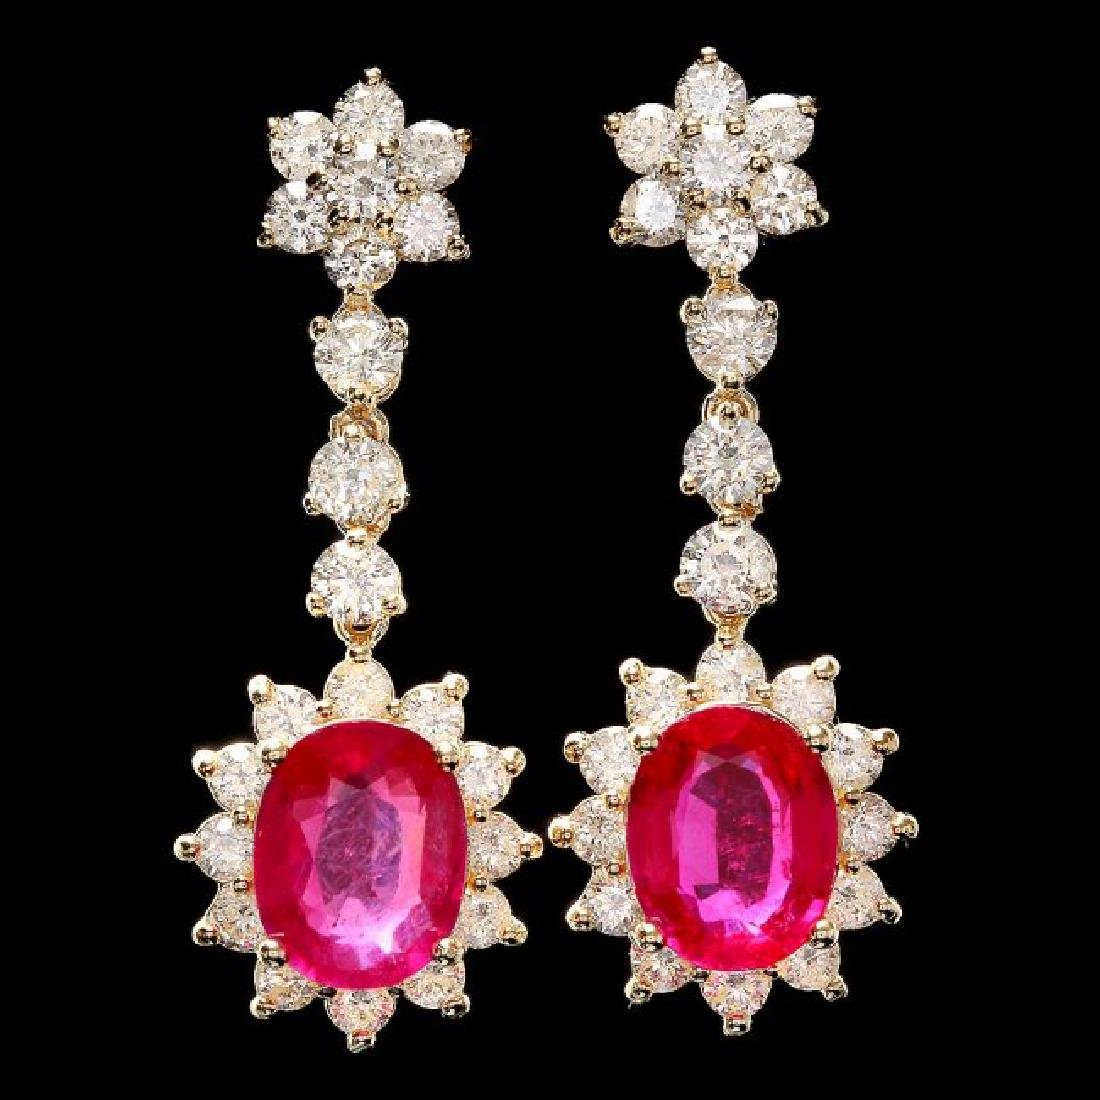 14k Gold 6.00ct Ruby 3.0ct Diamond Earrings